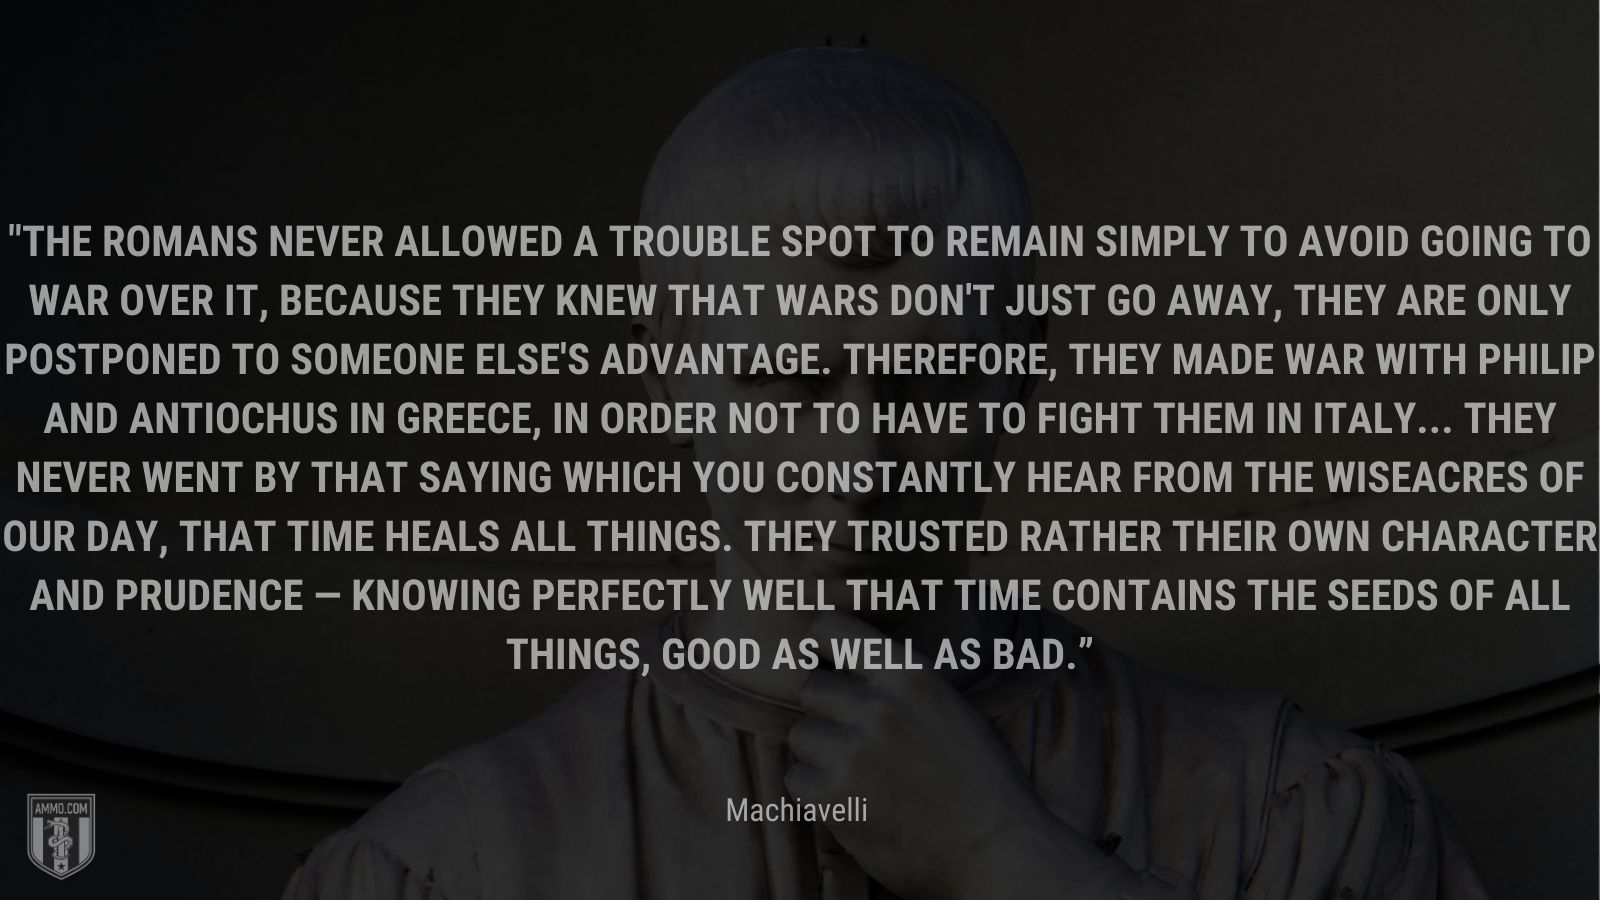 """""""The Romans never allowed a trouble spot to remain simply to avoid going to war over it, because they knew that wars don't just go away, they are only postponed to someone else's advantage. Therefore, they made war with Philip and Antiochus in Greece, in order not to have to fight them in Italy... They never went by that saying which you constantly hear from the wiseacres of our day, that time heals all things. They trusted rather their own character and prudence — knowing perfectly well that time contains the seeds of all things, good as well as bad."""" - Machiavelli"""